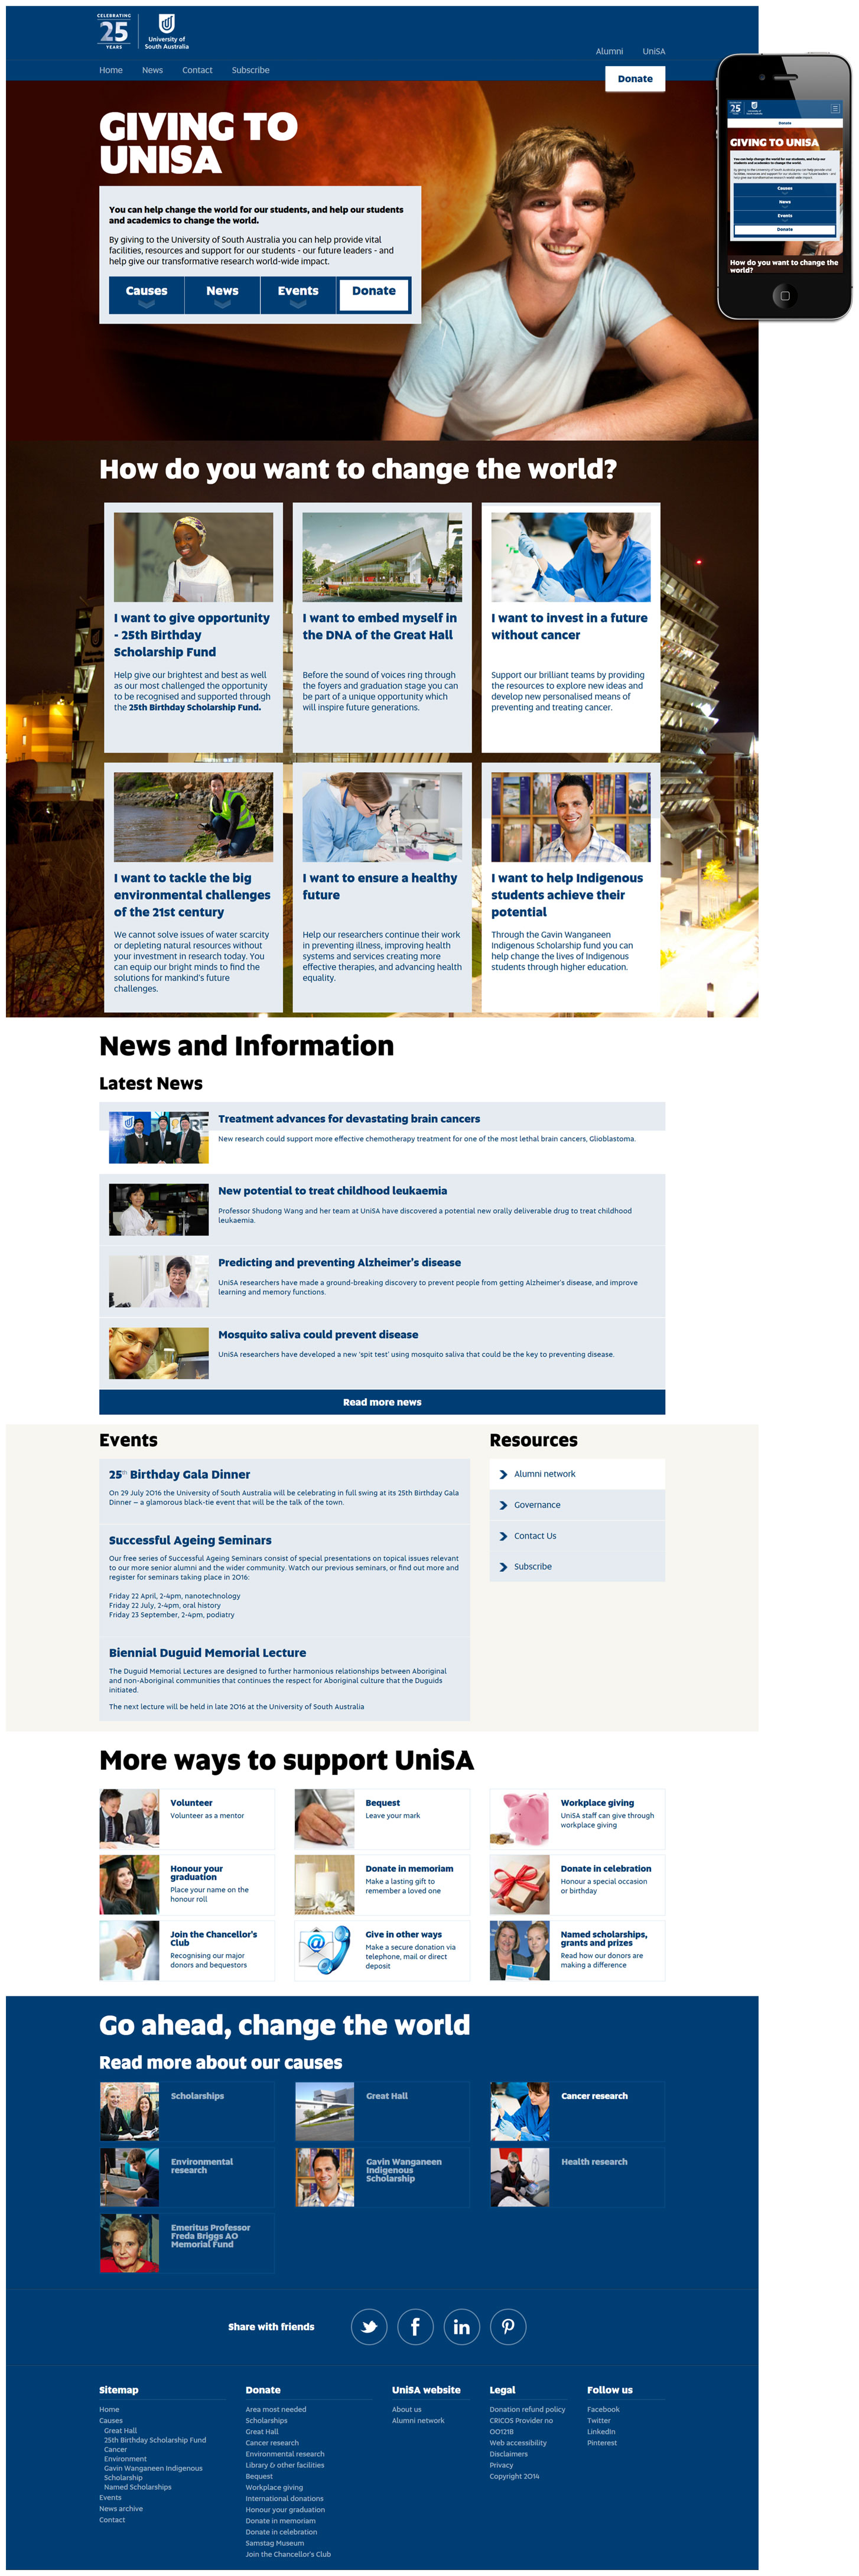 Created whilst working at University of South Australia for the Alumni team. Subsequent to the initial design and build process the site was handed over for ongoing content updates and modifications.